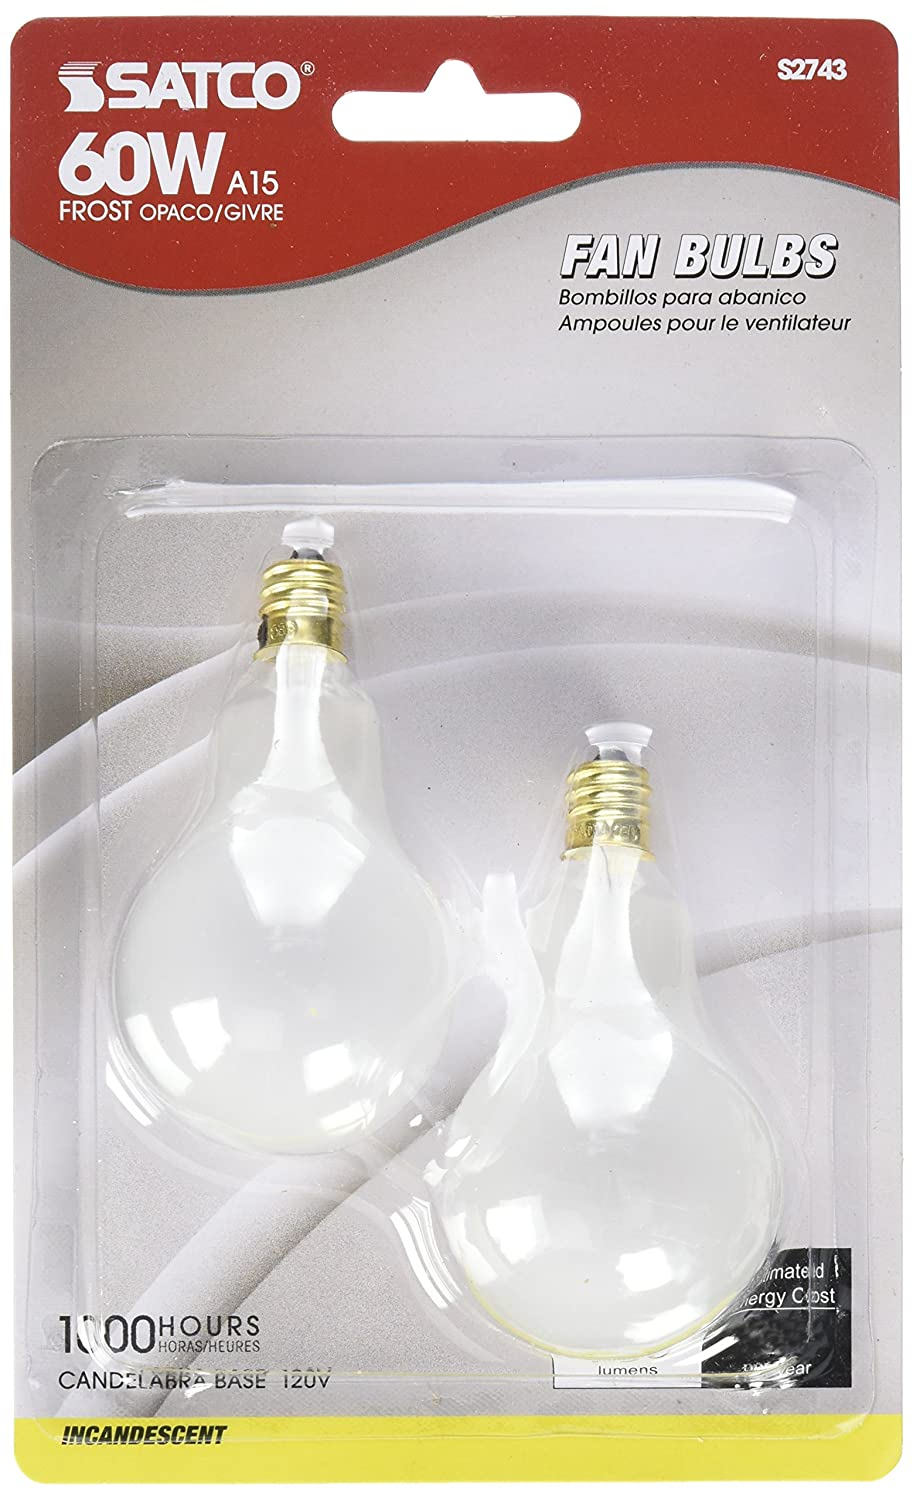 LEDcandescent 6W Nostalgic Filament COB LED Bulb to Replace 50W Incandescent.